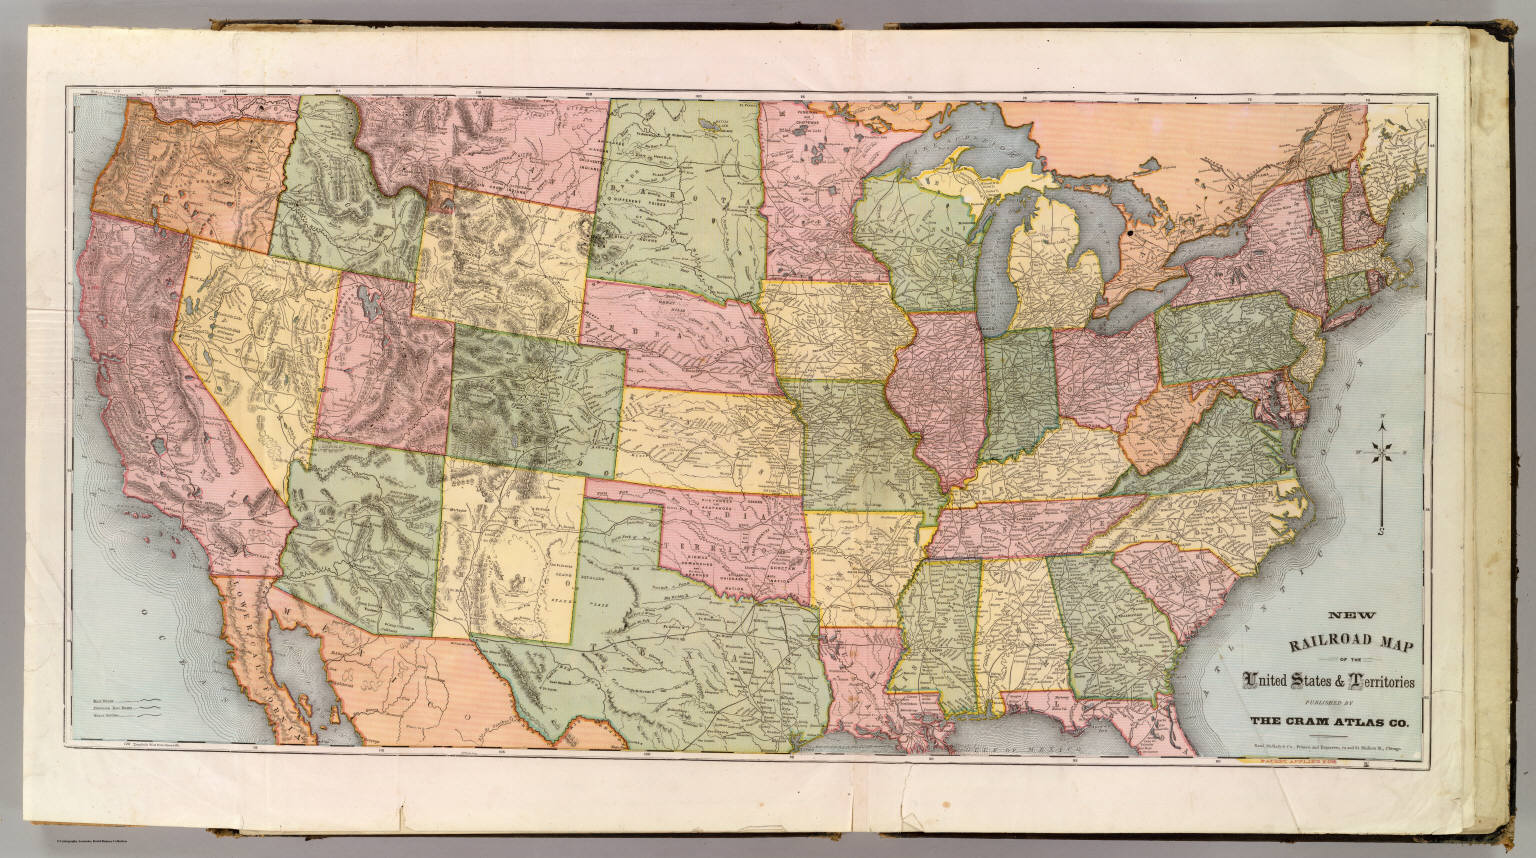 Railroad Map Of The United States Territories Cram Atlas - Railroad map us 1880